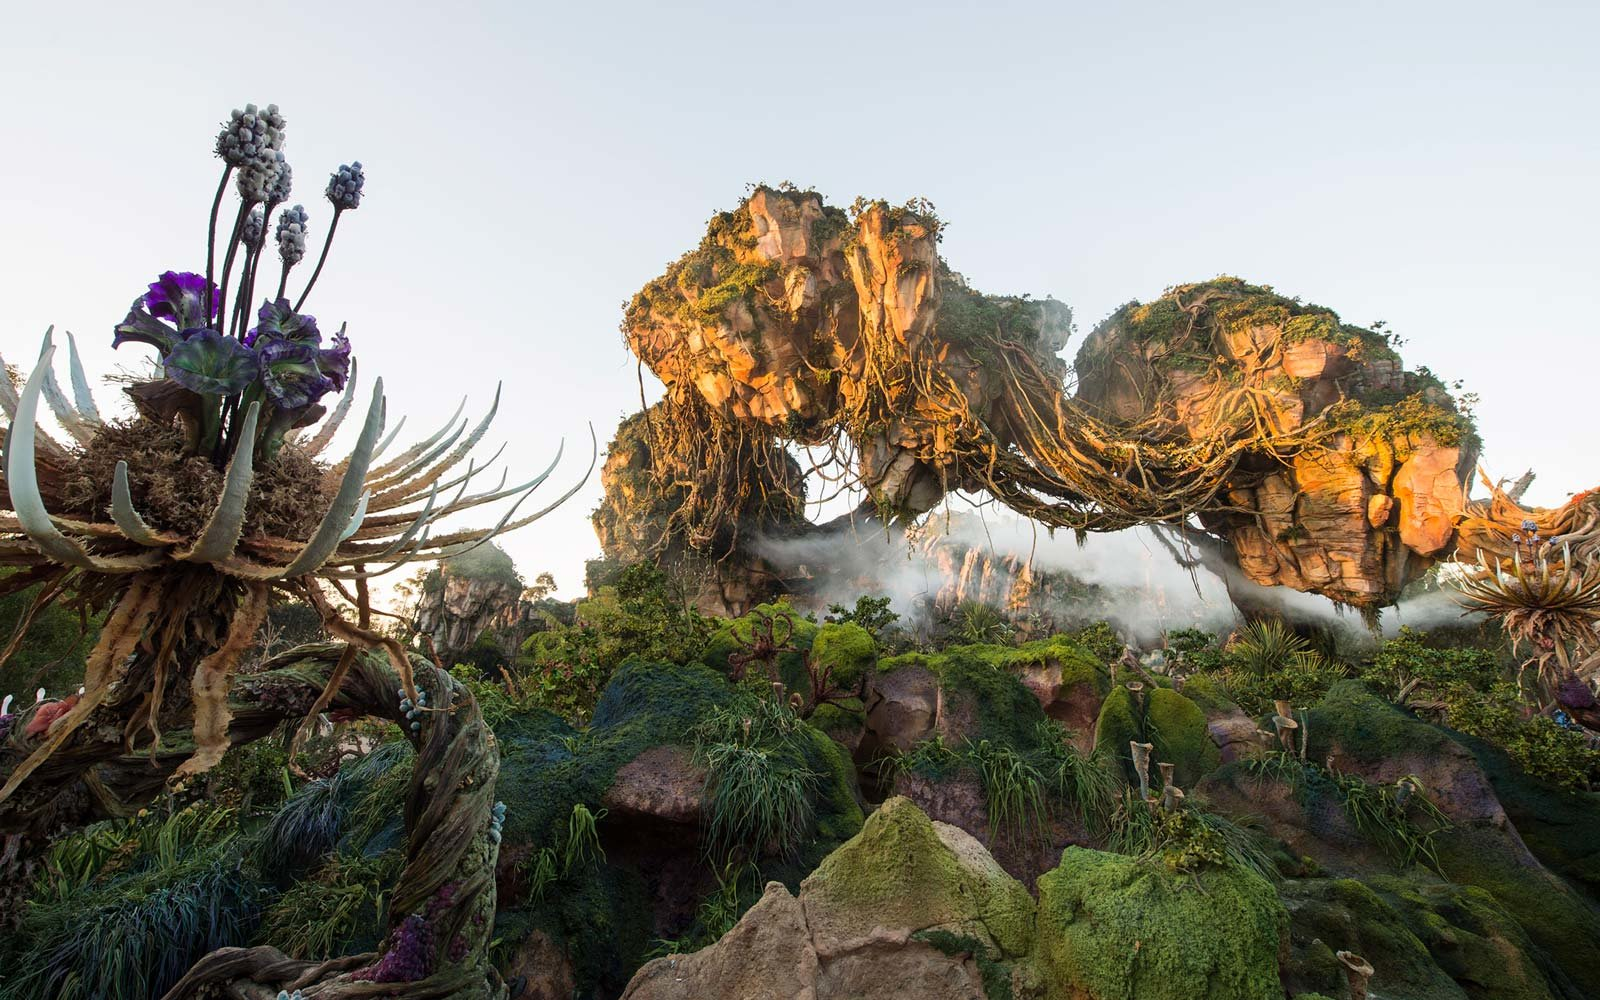 Floating rocks at the Pandora theme park